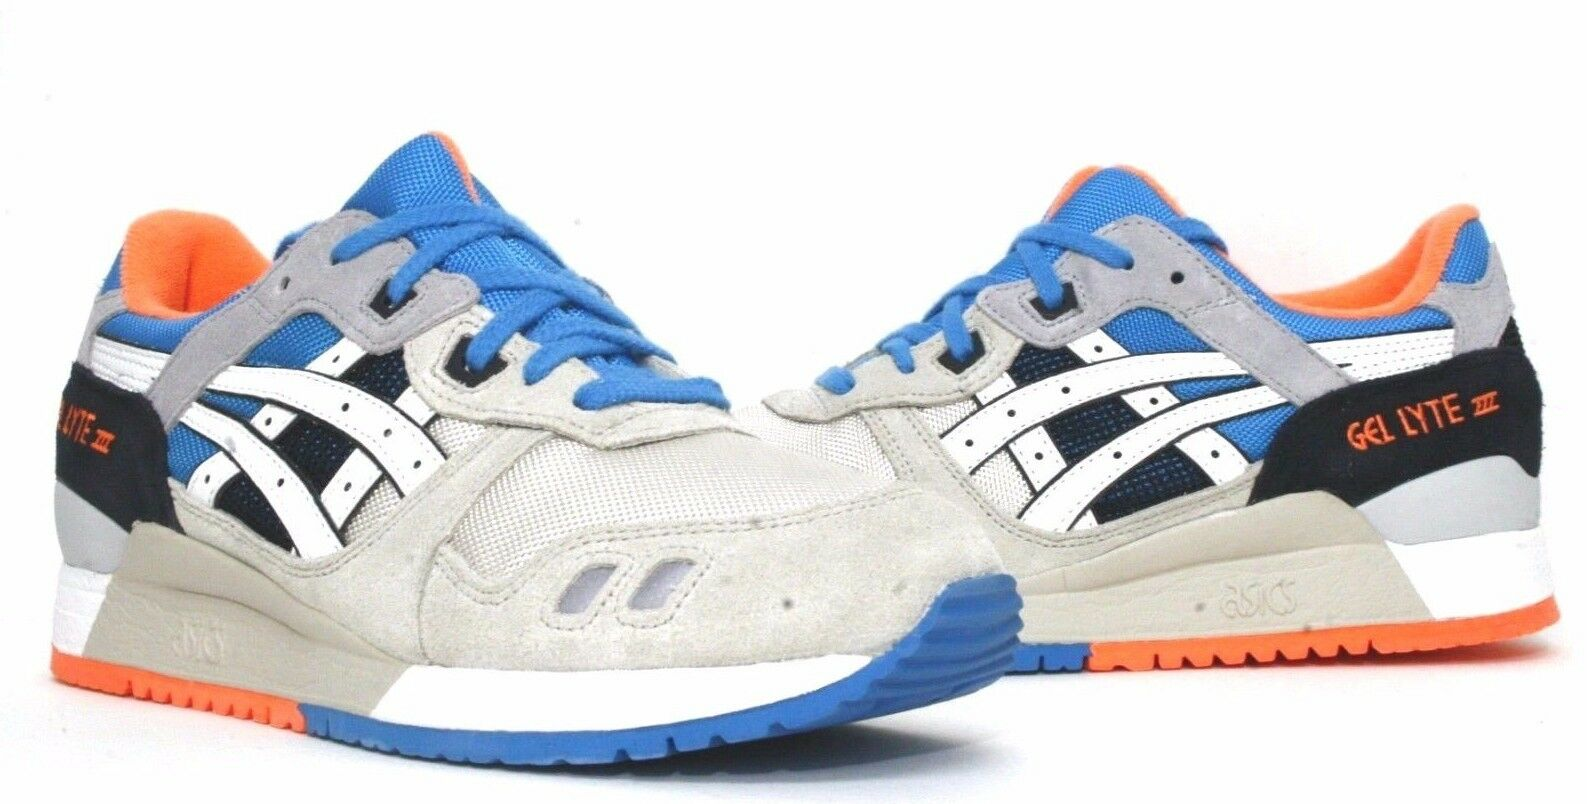 Asics Gel-Lyte III Men's Running shoes H405N-9901 Men Size  8, 8.5, 9.5,10.5